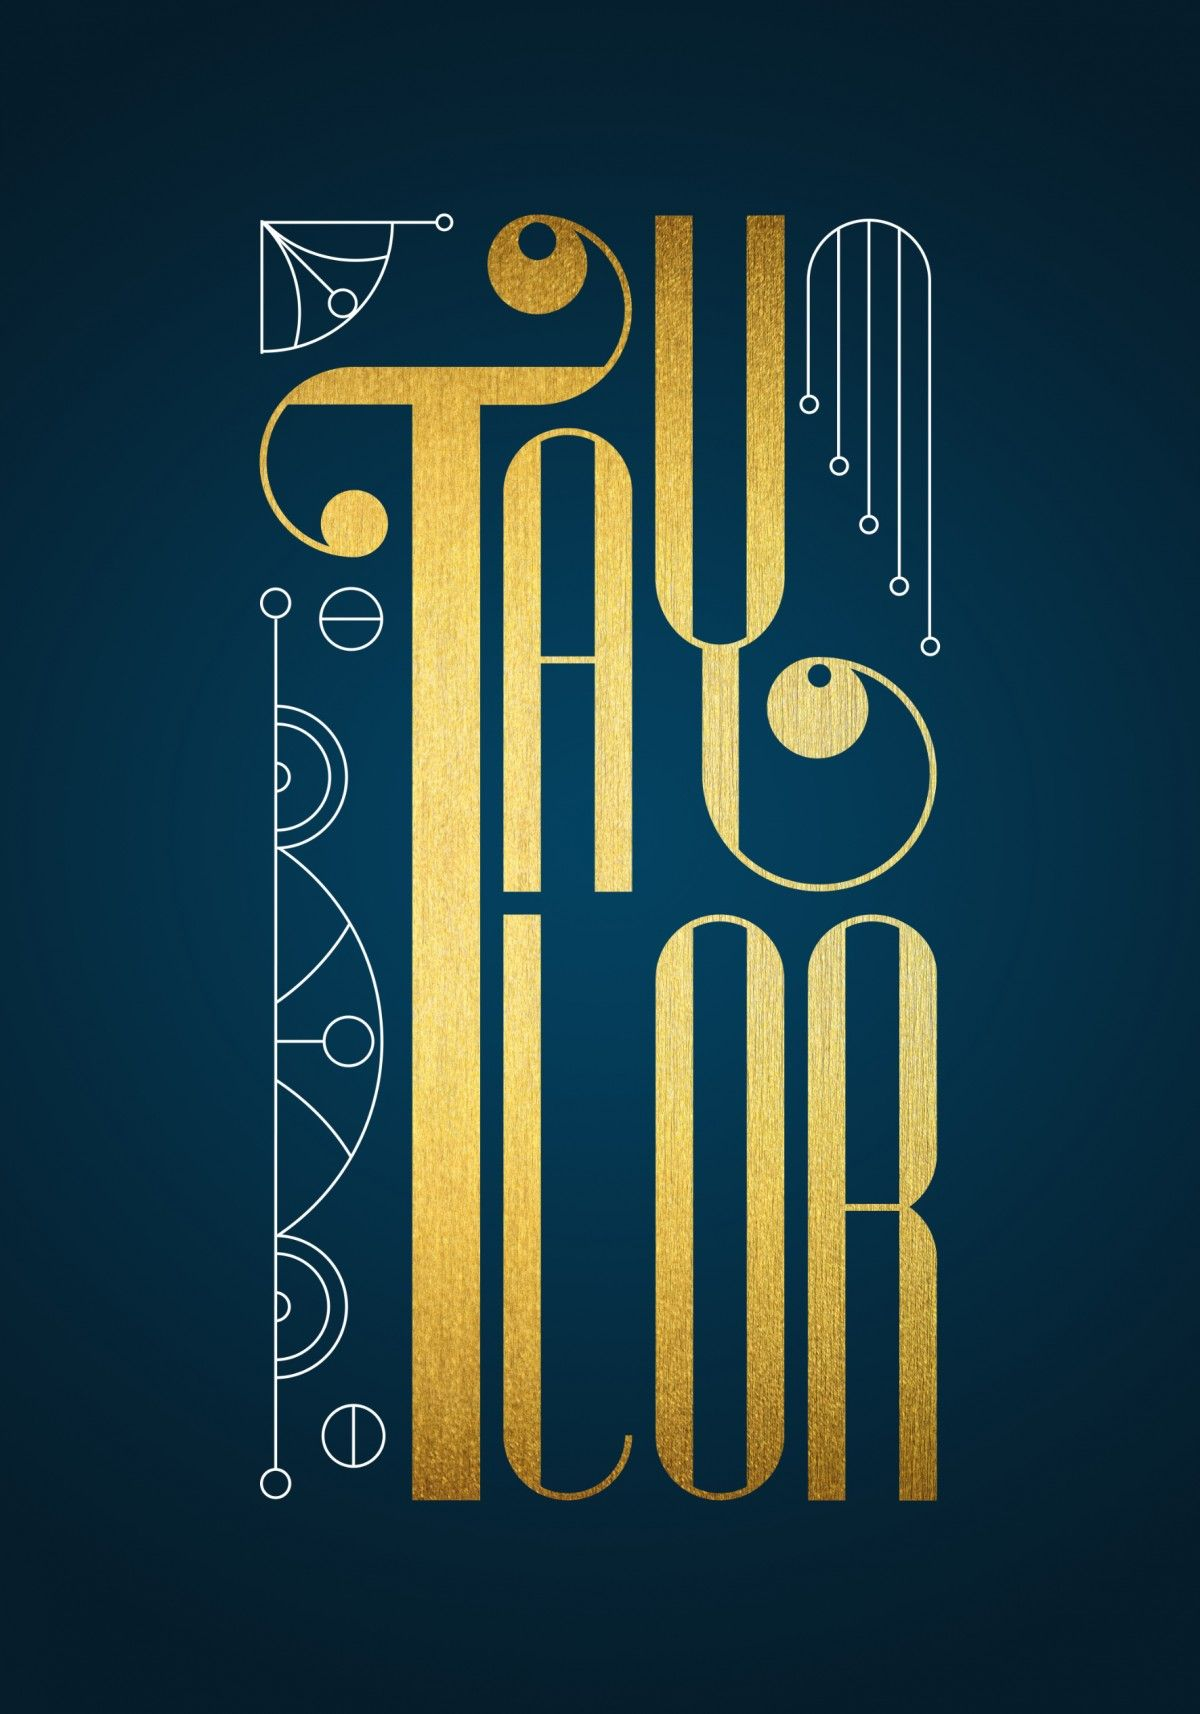 Taylor lettering by timone